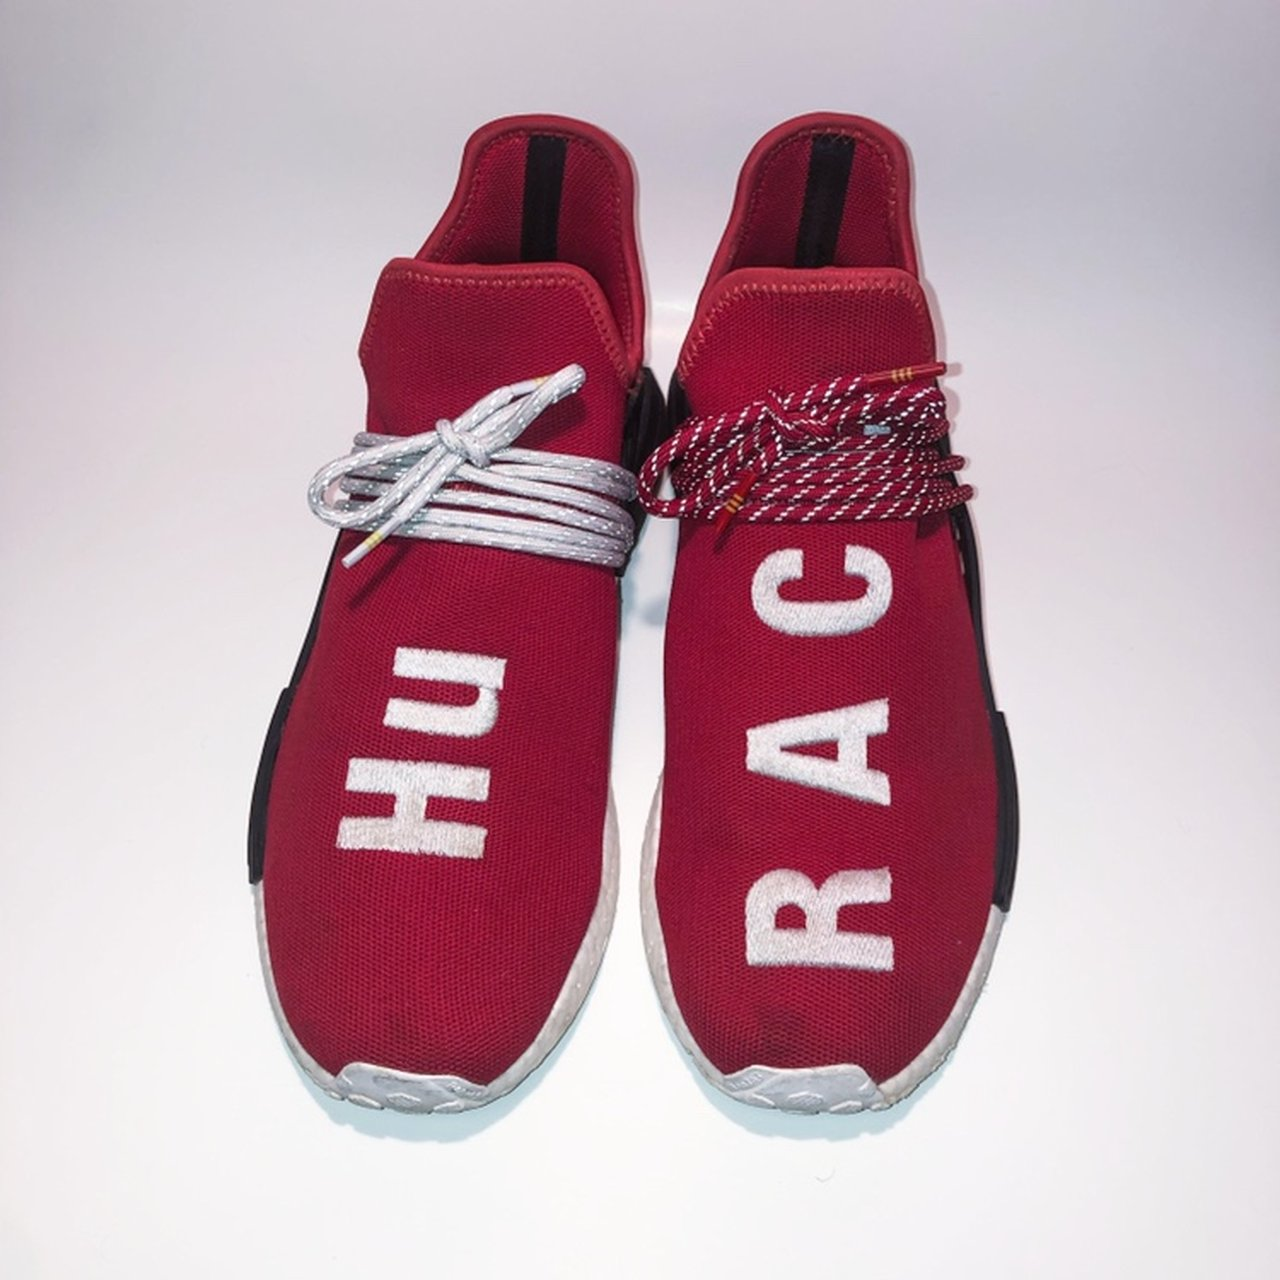 f8b81c273 🛑HUMAN RACES🛑 Red  White  Black Size 12 Adidas NMD